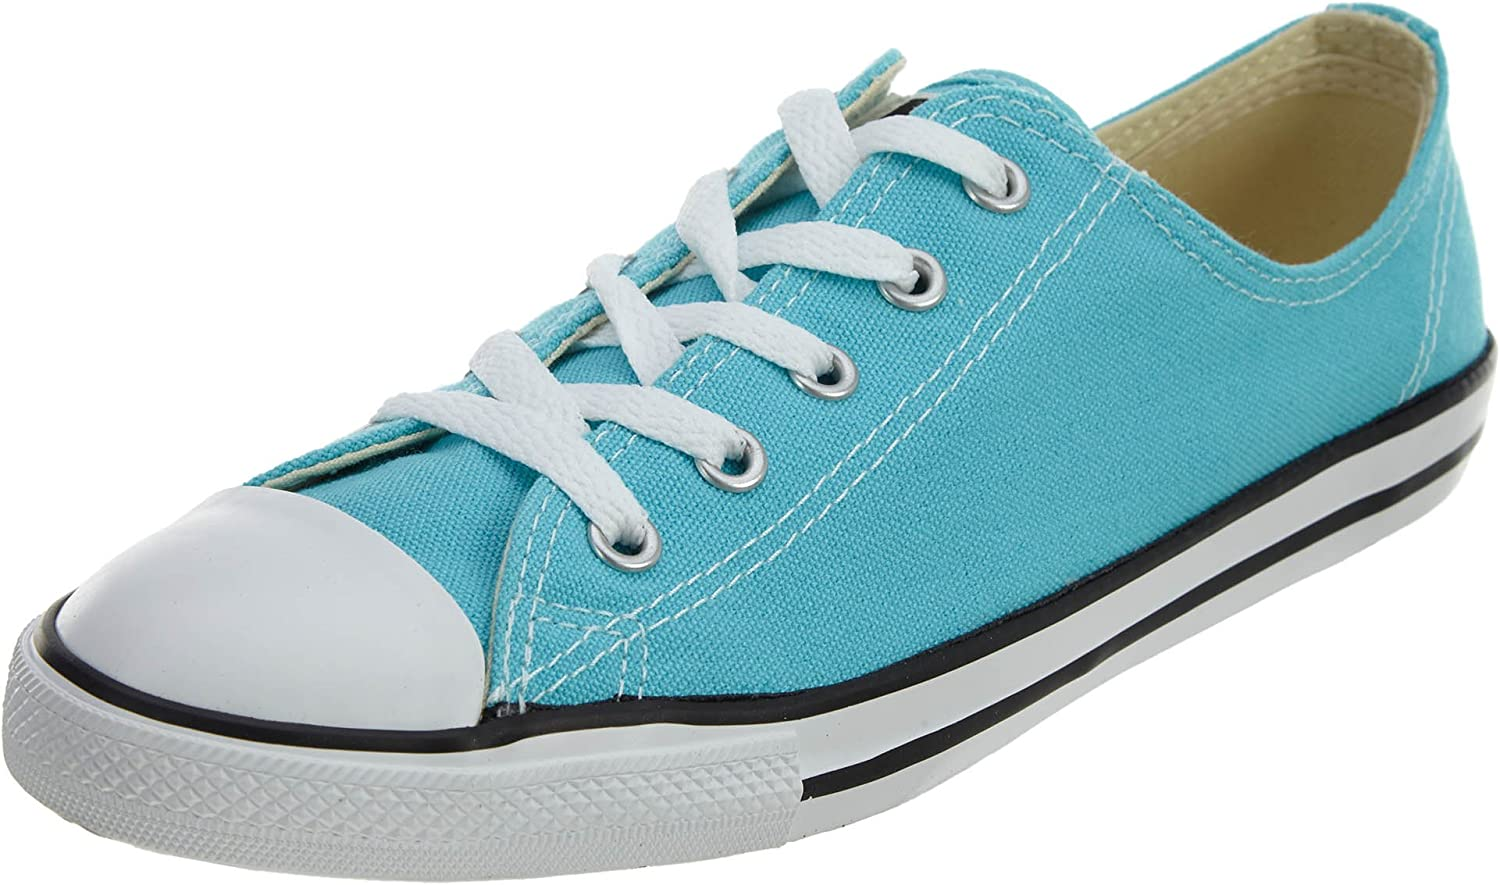 Converse Unisex-Adult Dainty Canvas Low Top Sneaker